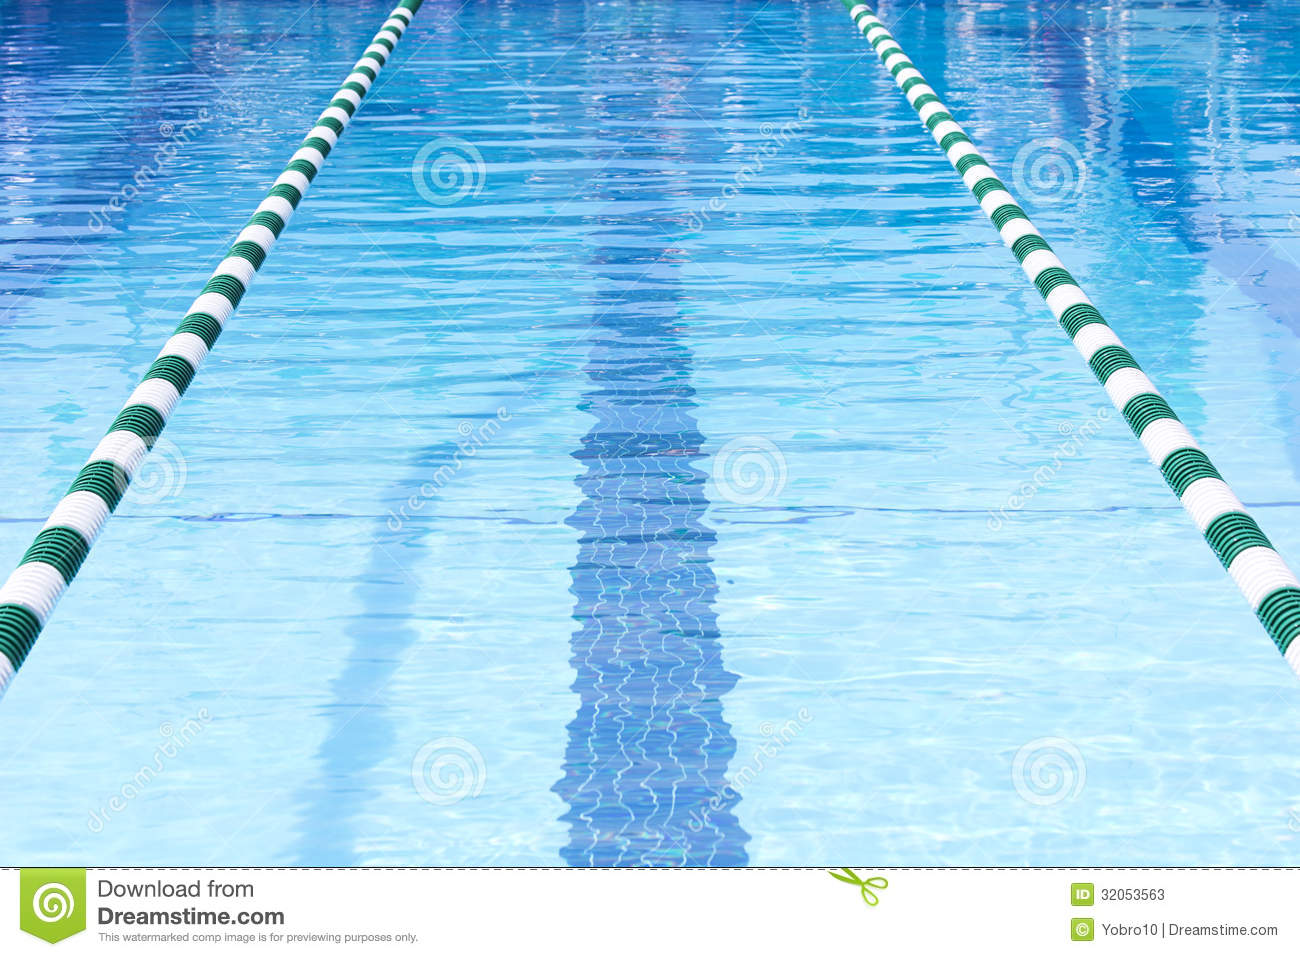 A medley of the pool clipart - Clipground